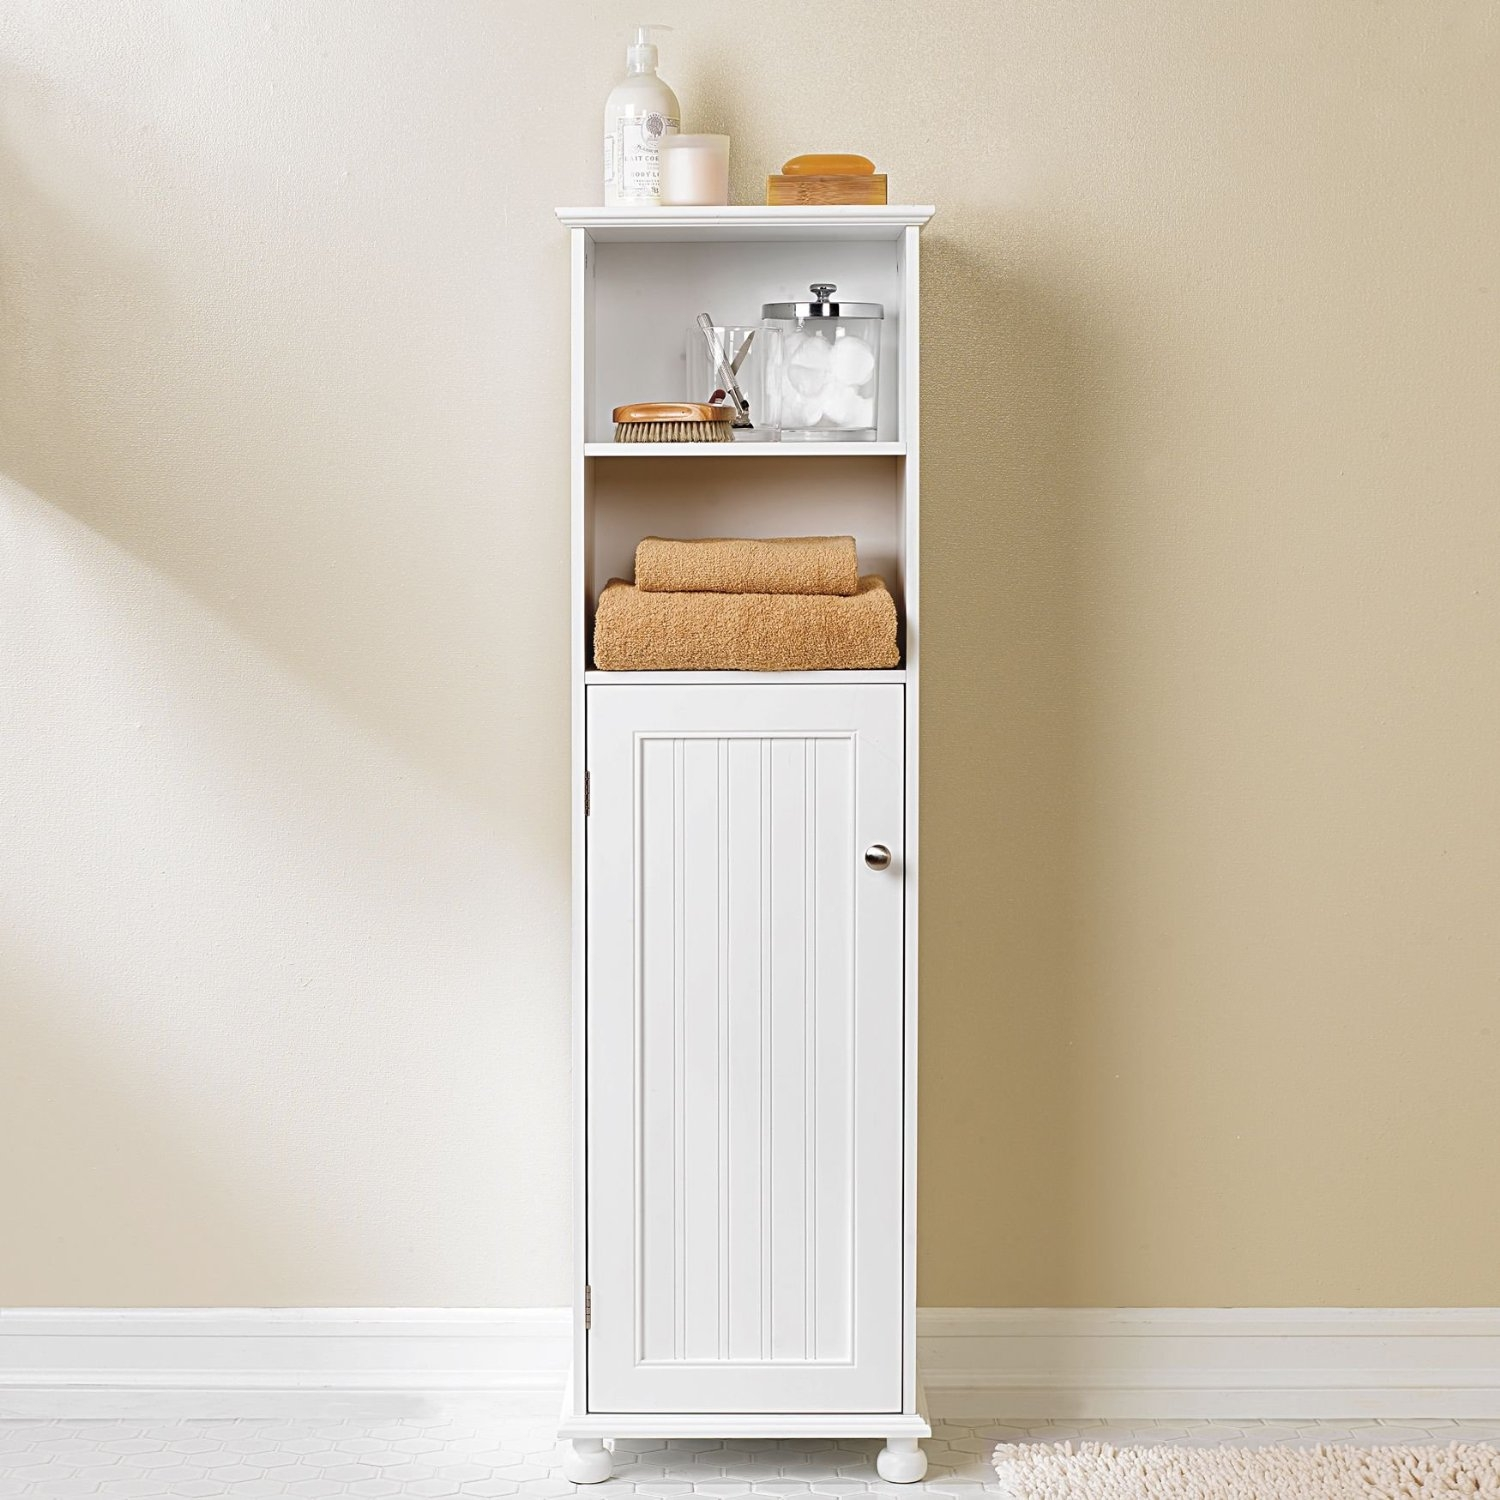 Permalink to Free Standing Bathroom Storage Ideas